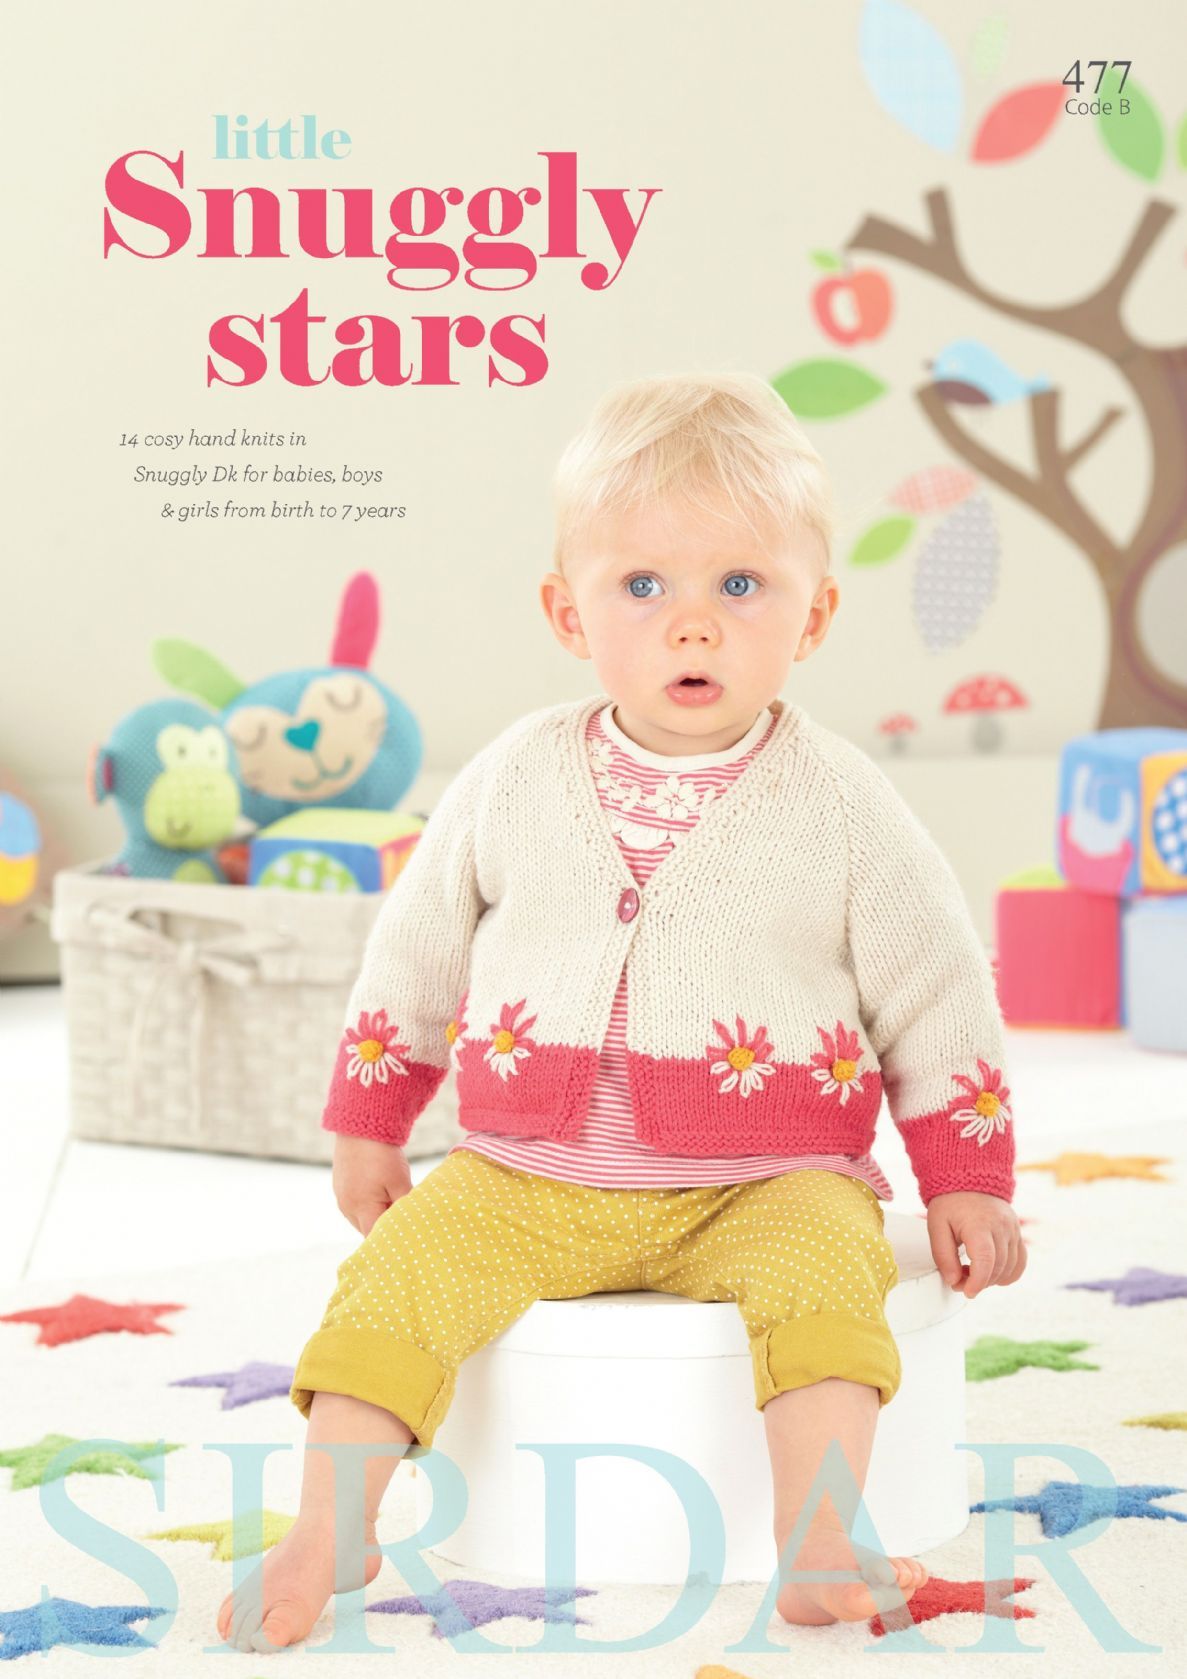 Sirdar Book 477 Little Snuggly Stars Sirdar Snuggly